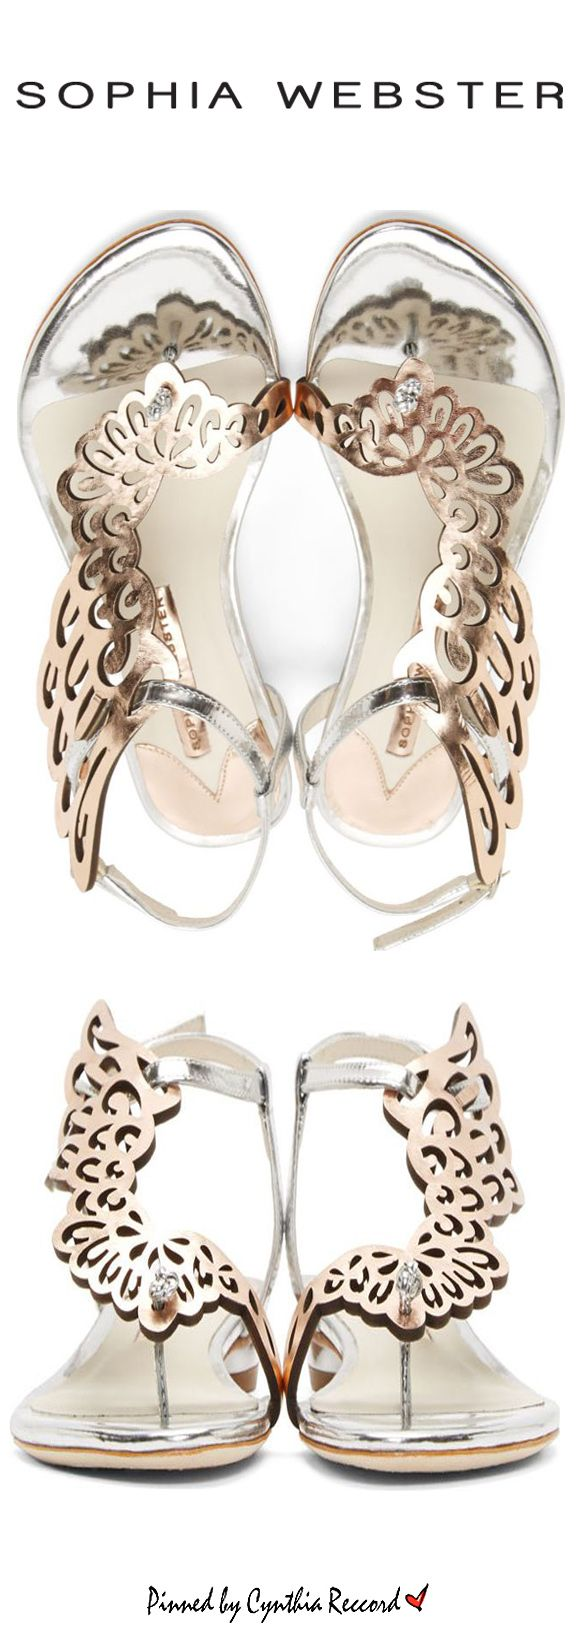 Sophia Webster Rose Gold & Silver Wing Seraphina Sandals | SS 2015 Collection | cynthia reccord